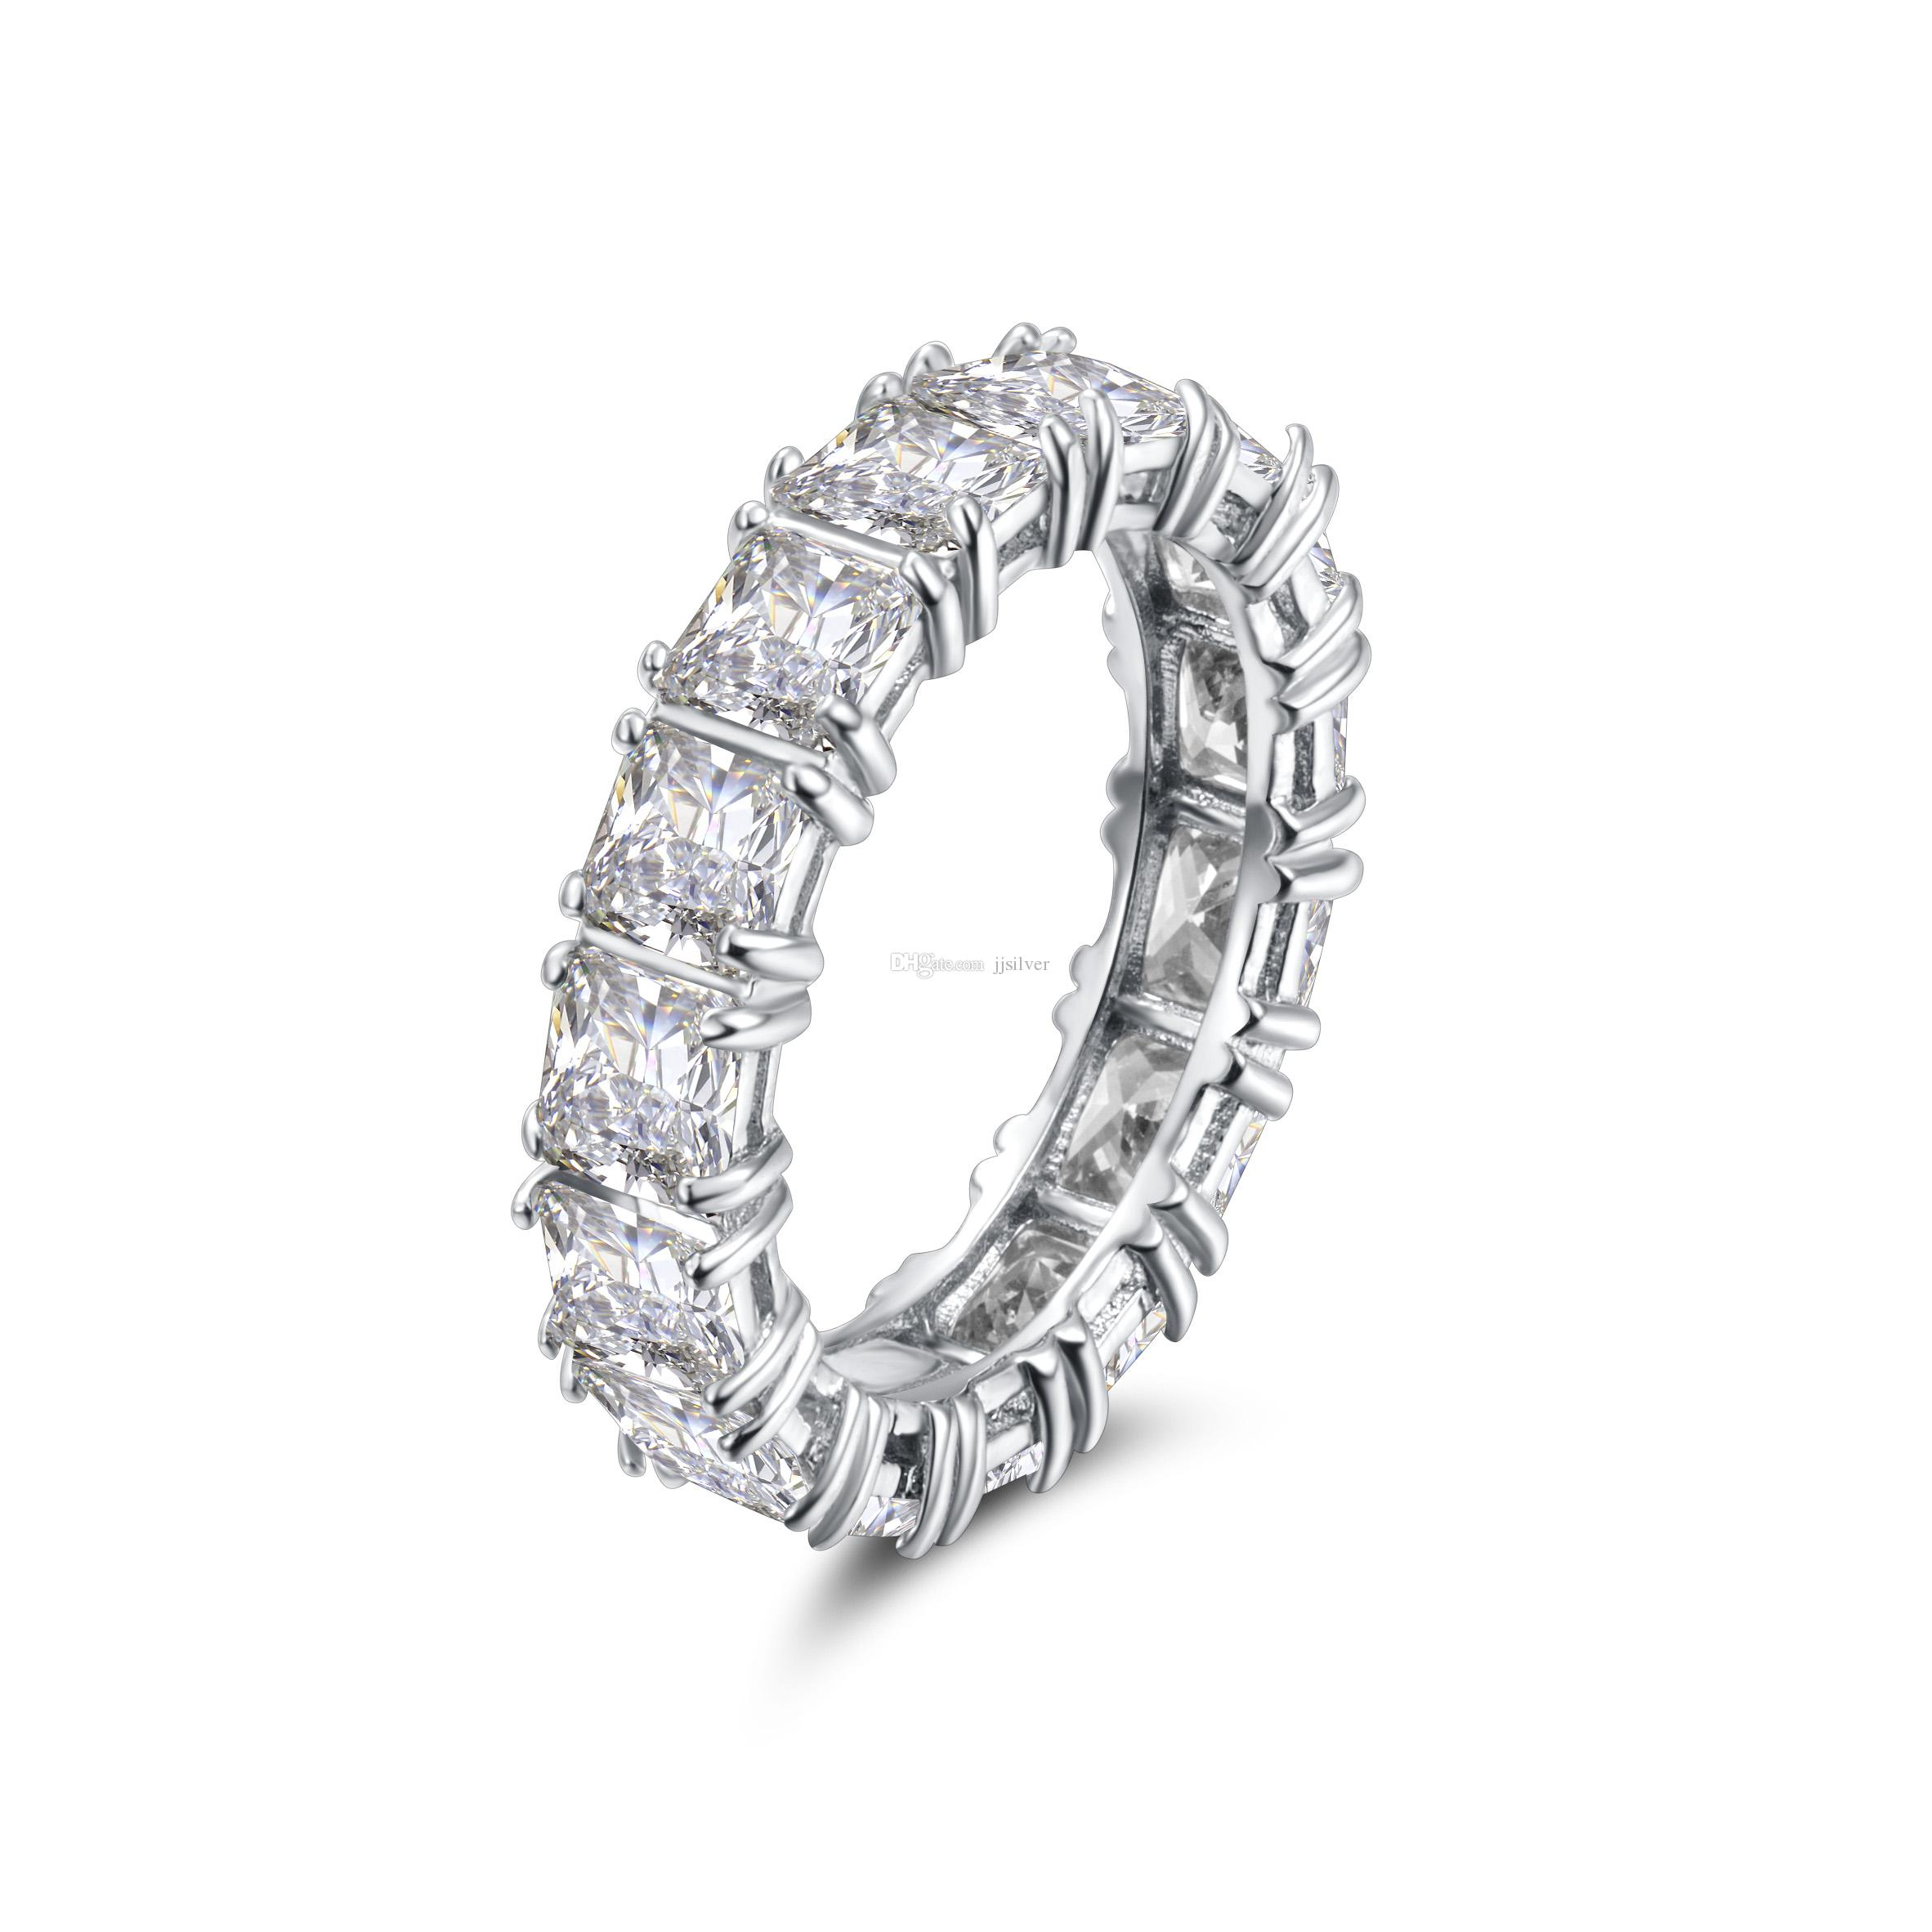 925 Sterling SILVER PAVE SETTING FULL SQUARE Diamant CZ ETERNITY BAND ENGAGEMENT WEDDING Stone Rings Size 6,7,8 Fine Jewelry